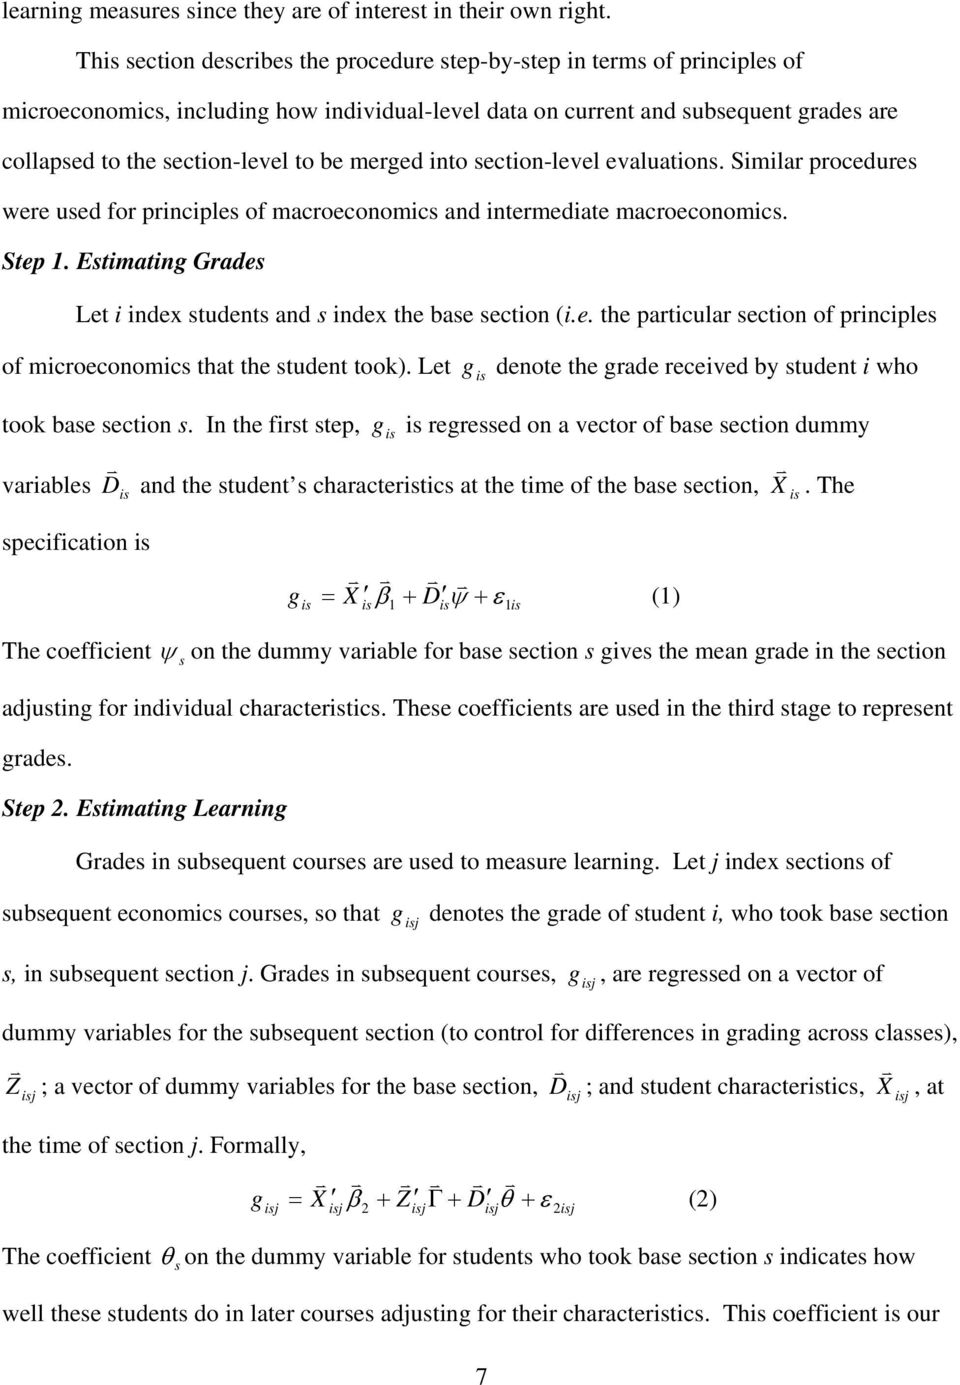 ection-level evaluation. Similar procedure were ued for principle of macroeconomic and intermediate macroeconomic. Step 1. Etimating Grade Let i index tudent and index the bae ection (i.e. the particular ection of principle of microeconomic that the tudent took).